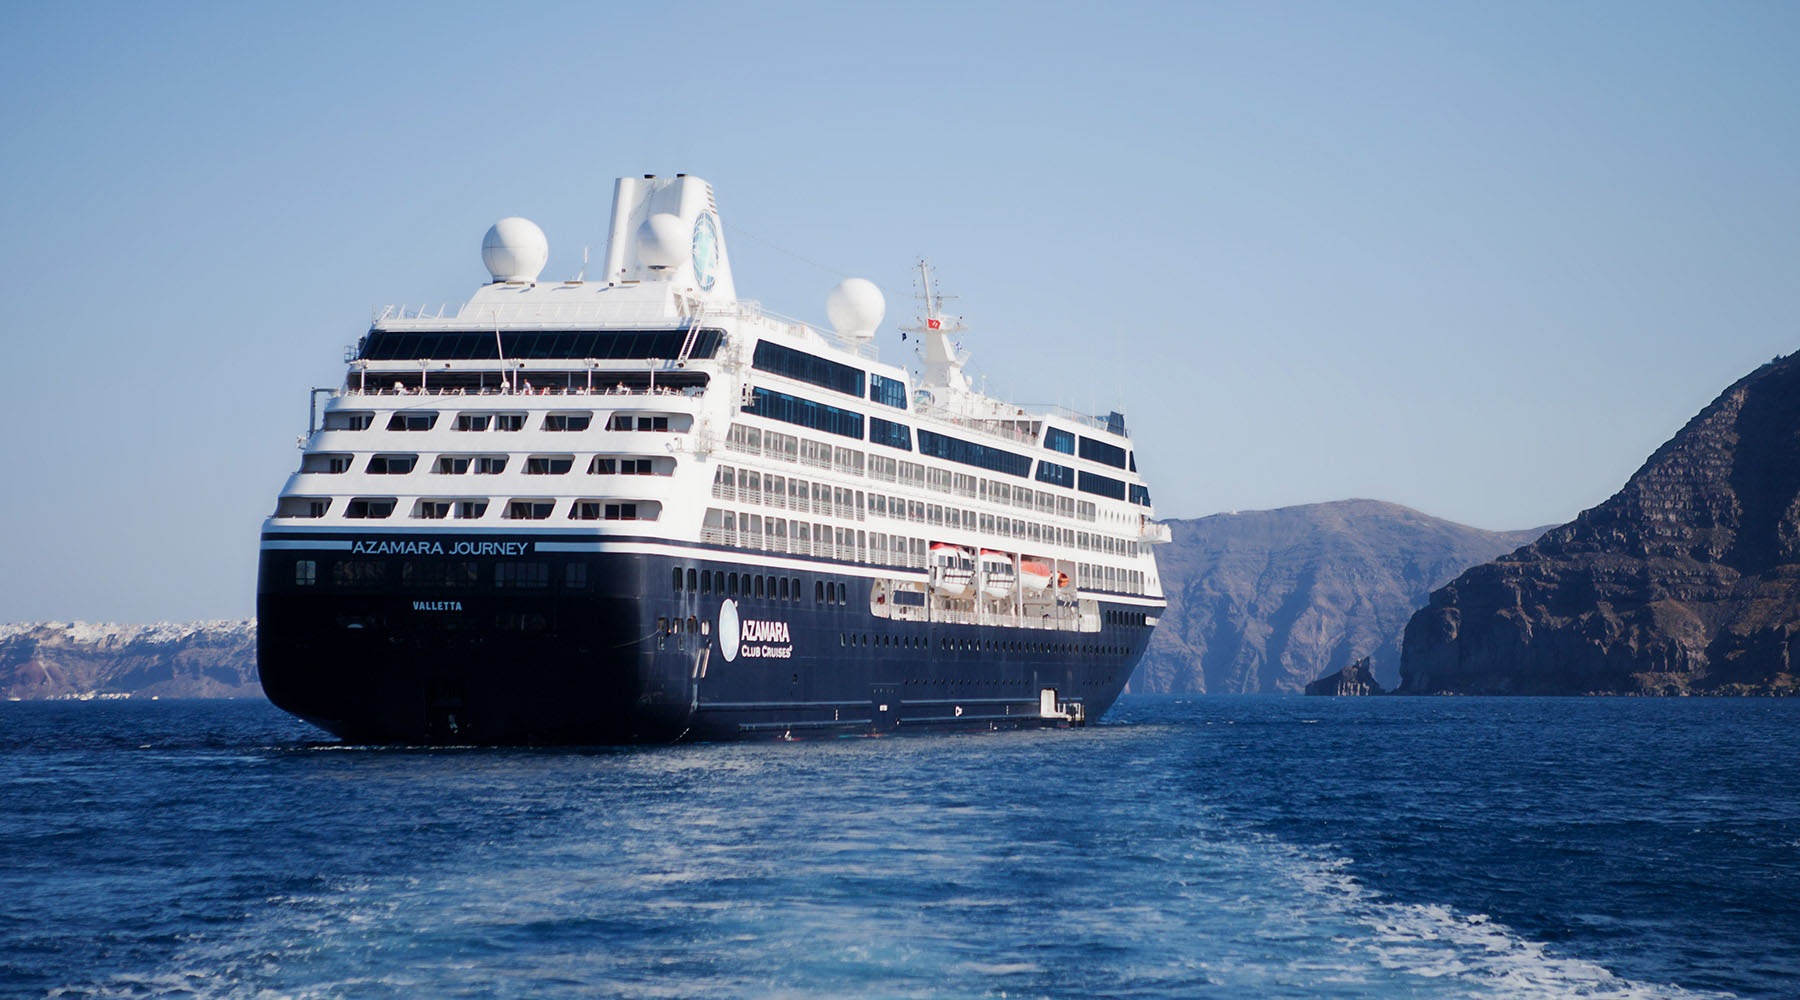 Aboard The Azamara Journey - Part Three